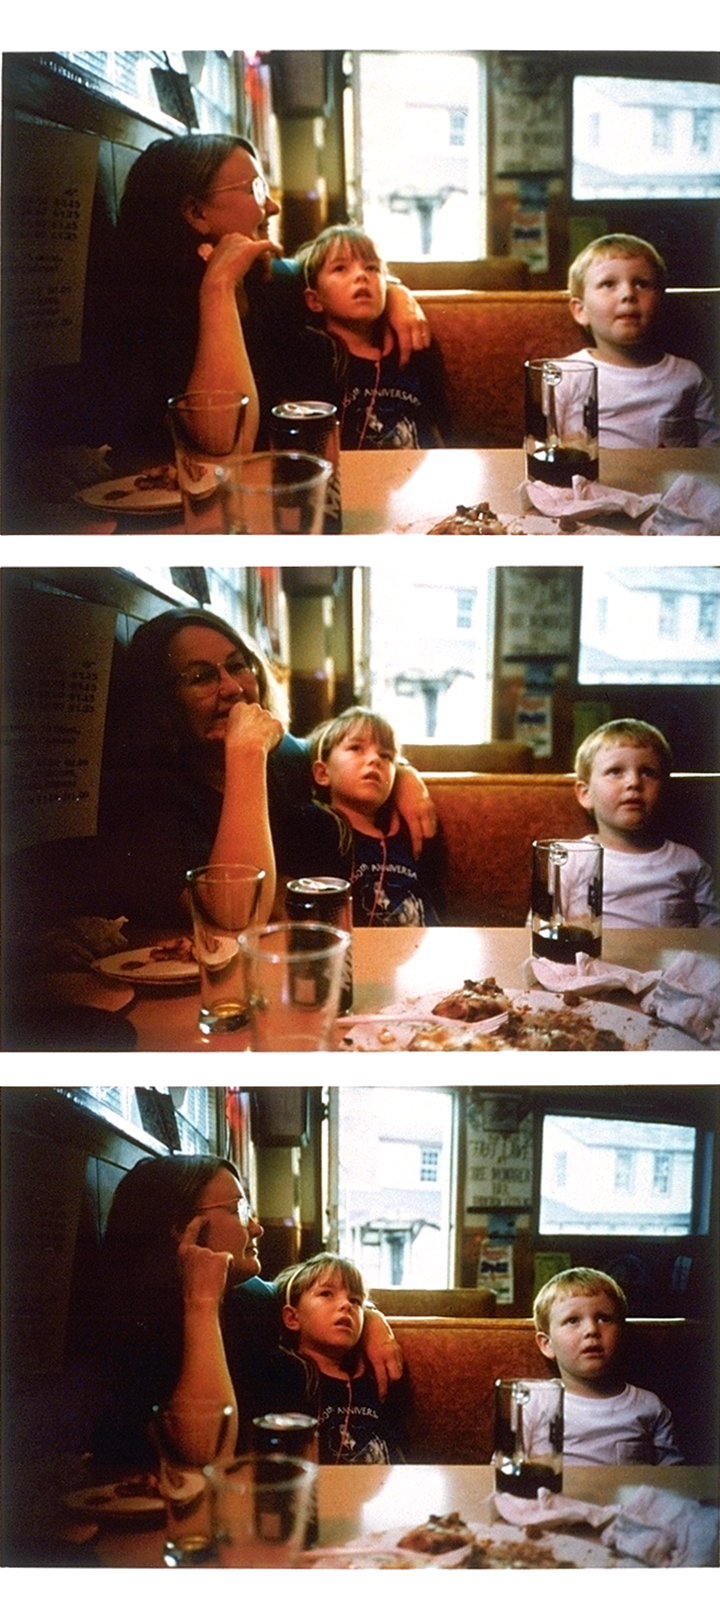 T1_127_pk145 94 B4.24 0003_cd 3258 files_3258-0076_Lg.jpg